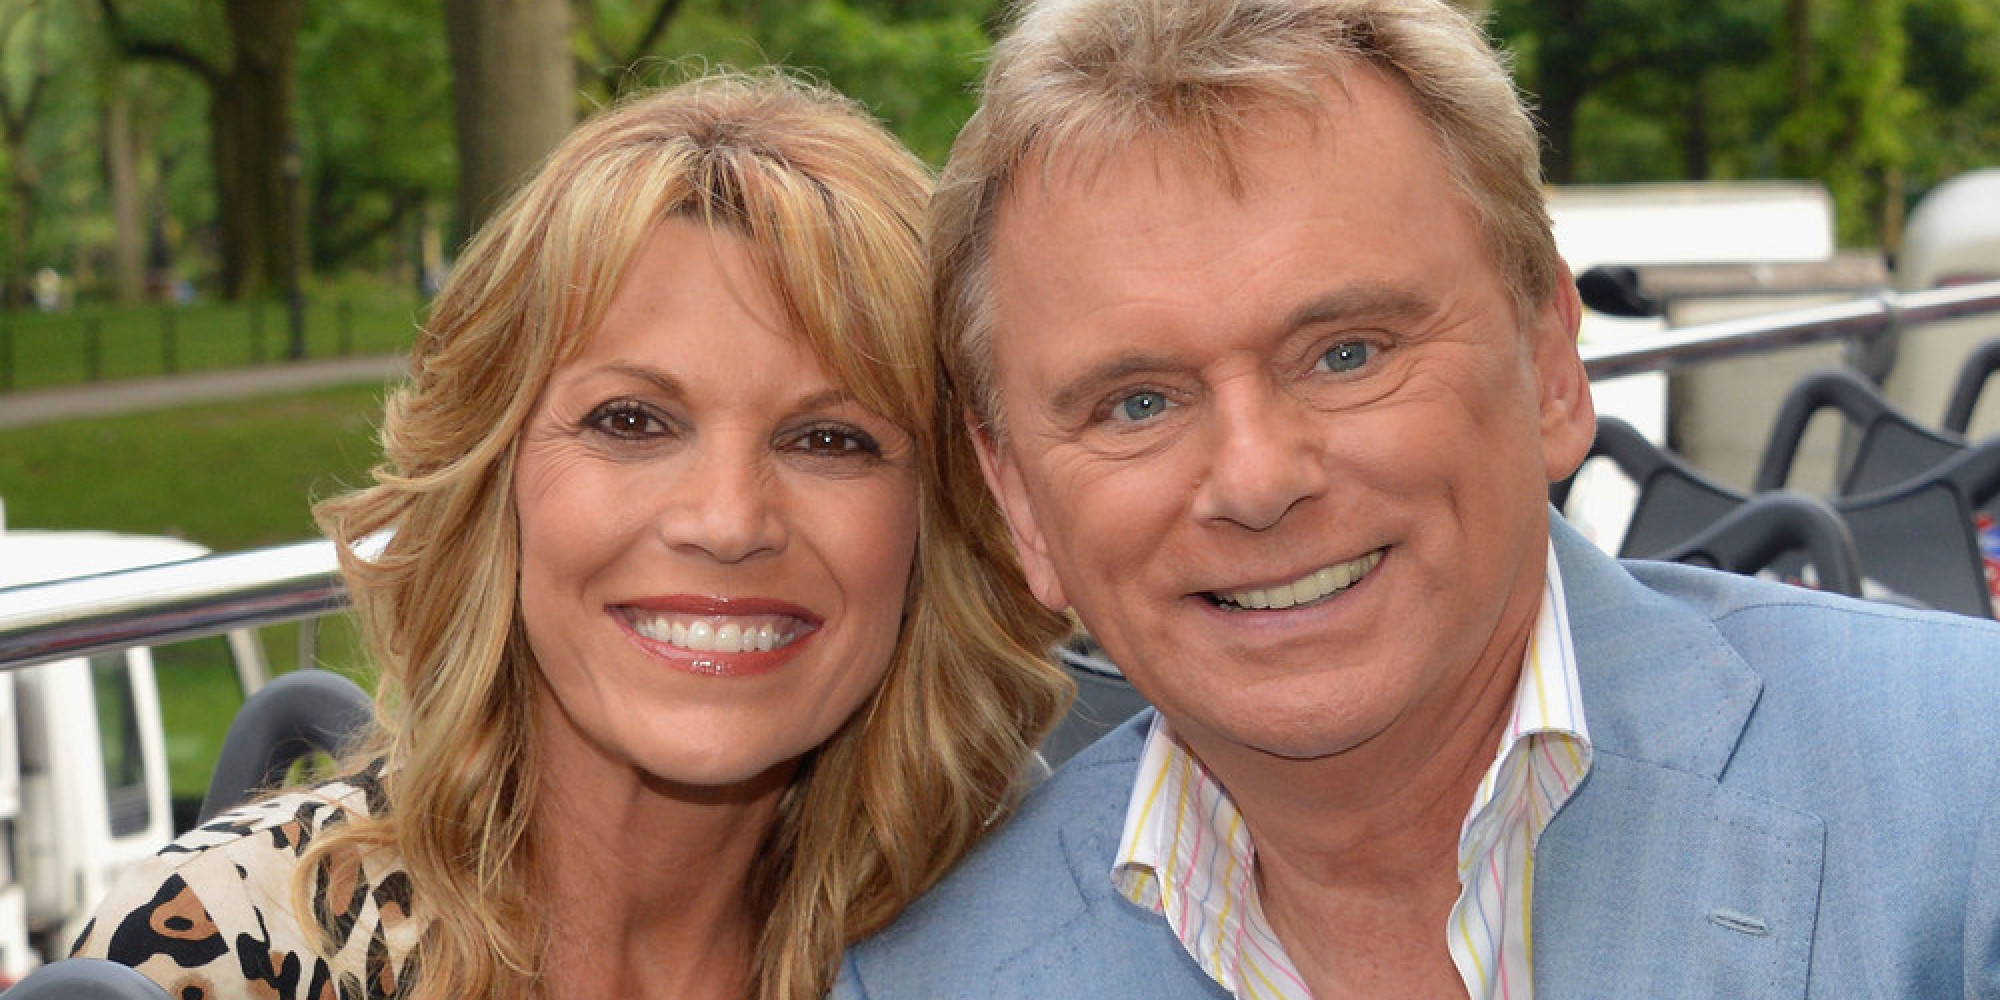 Pat Sajak On Aging Obsessions And The Most Misunderstood